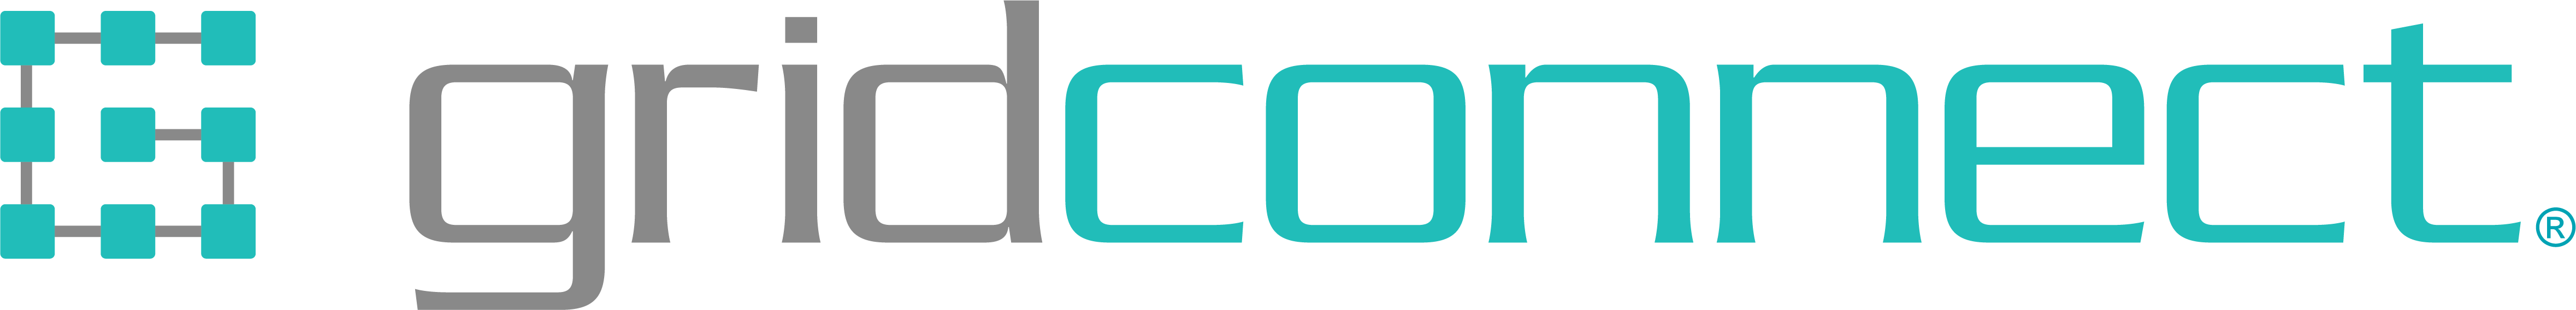 gridconnect_2clr (MASTER).png